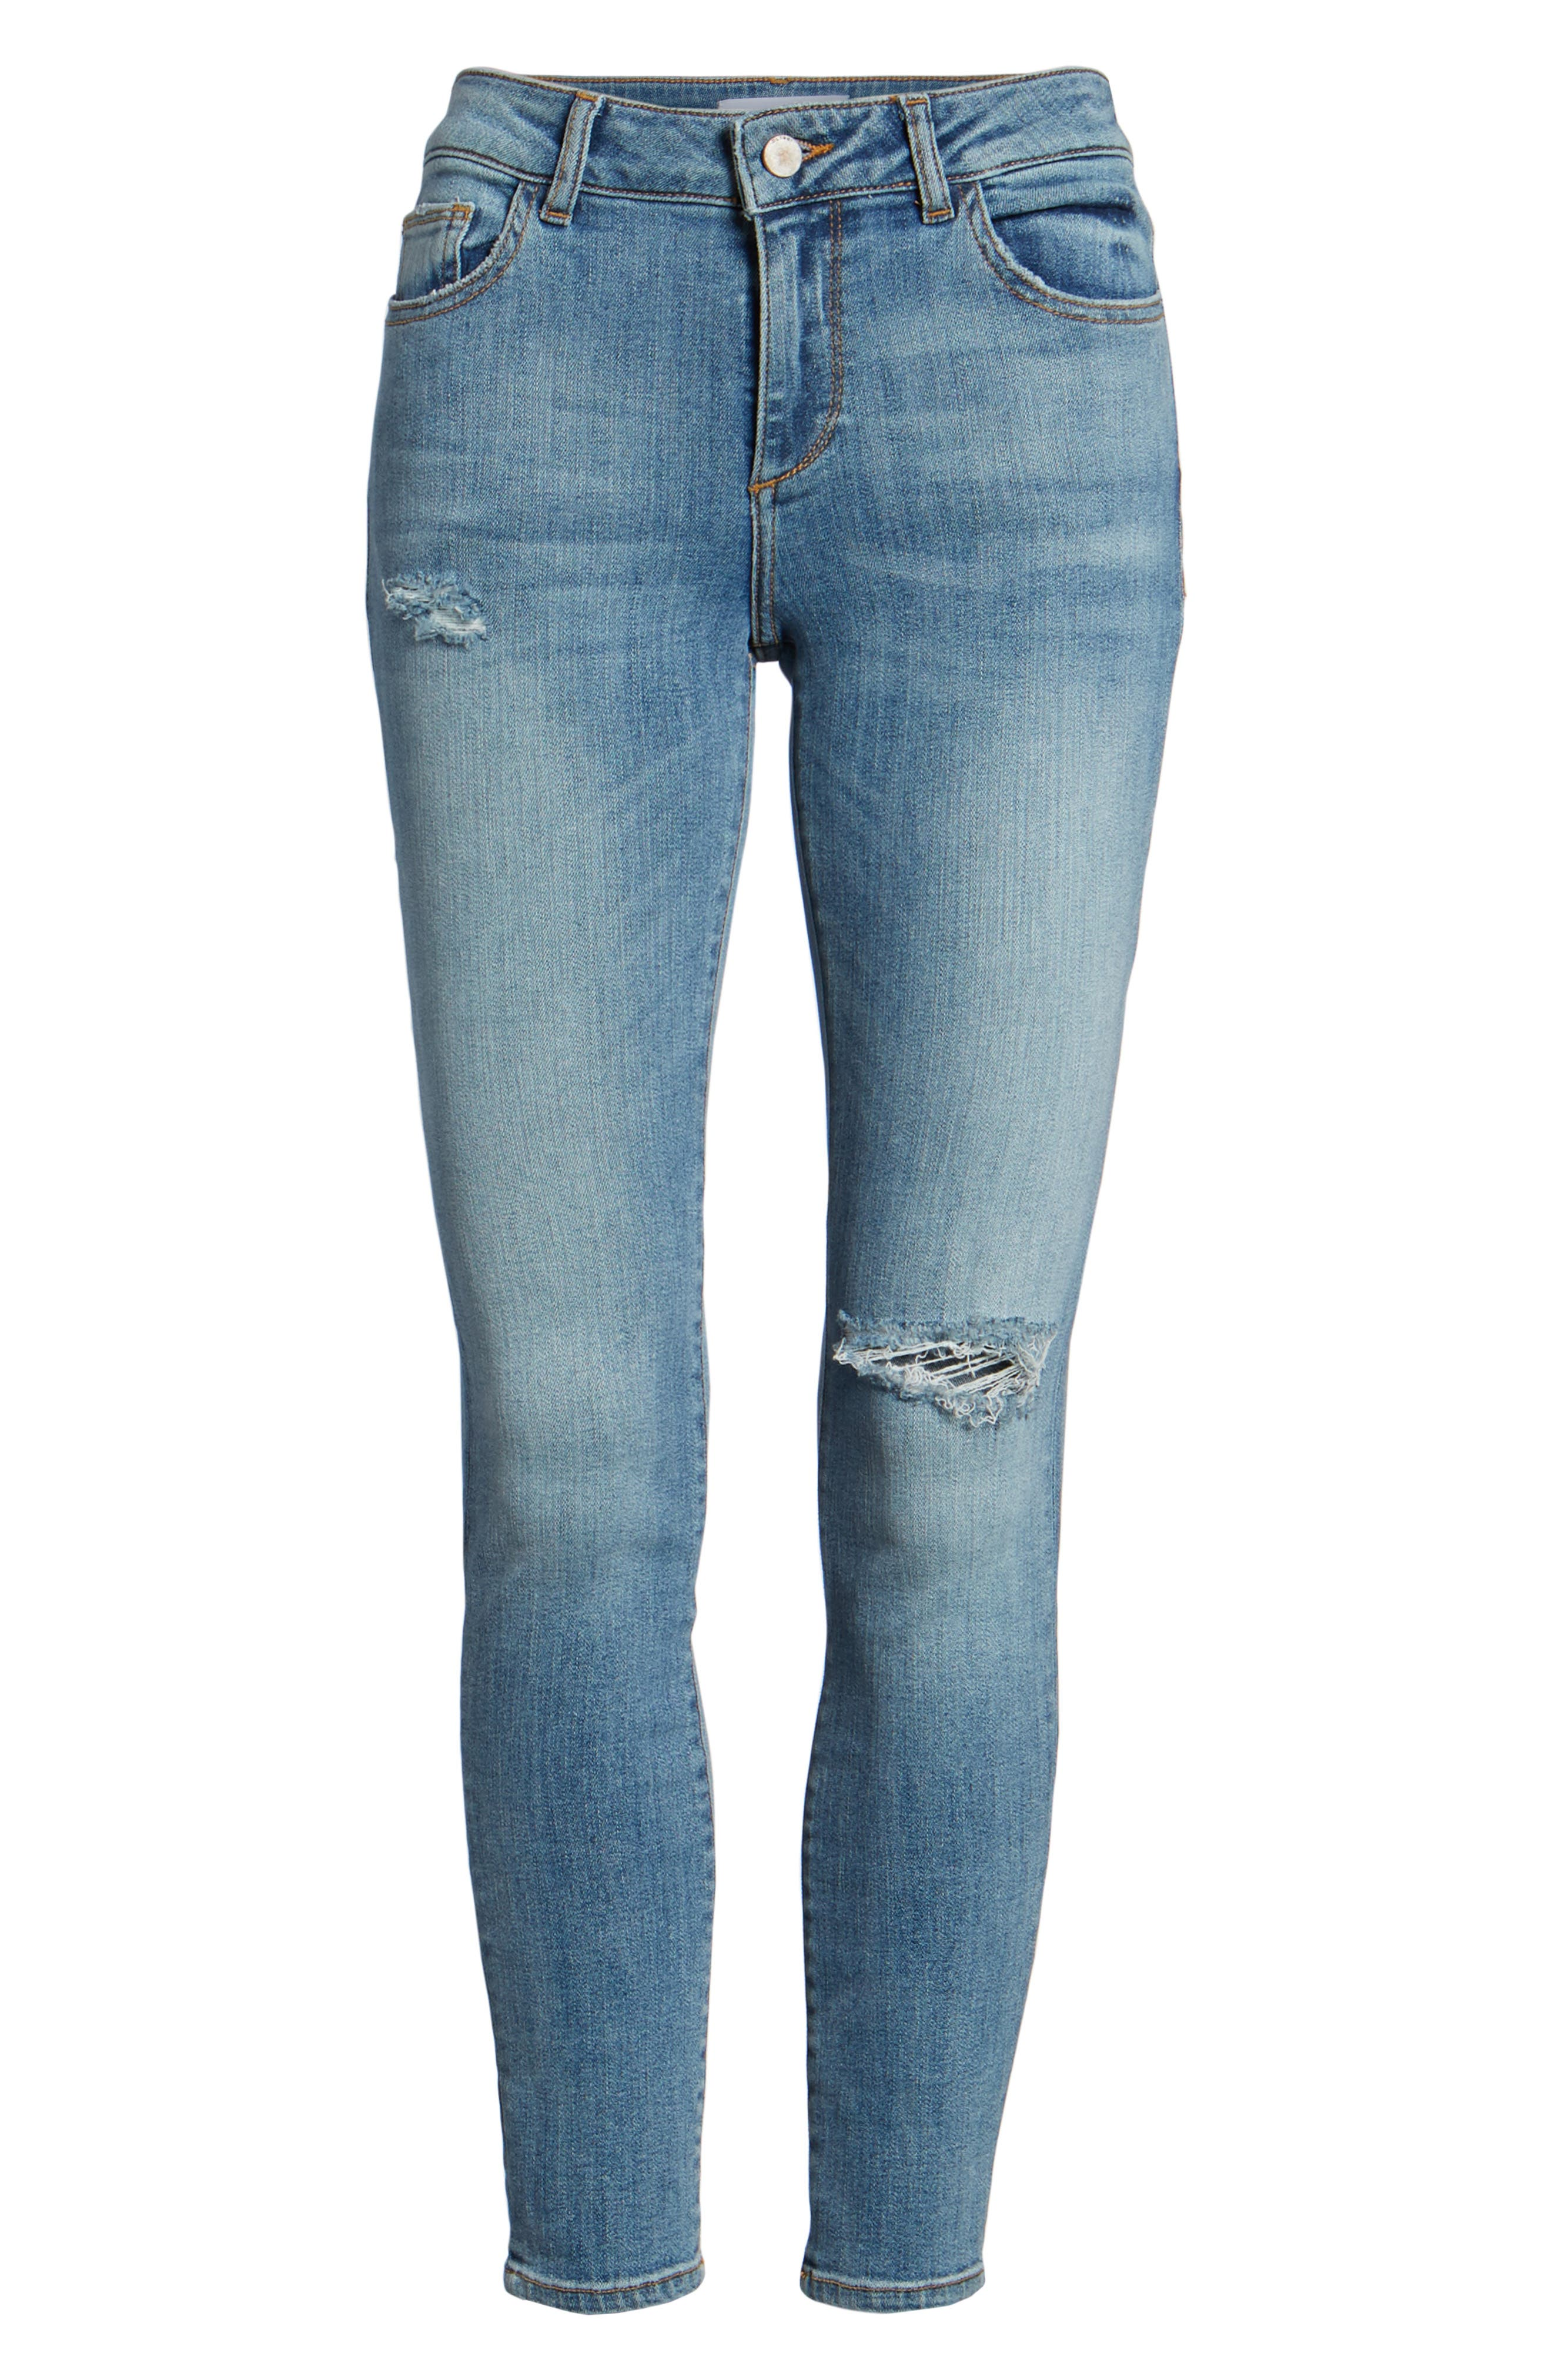 Margaux Instasculpt Ankle Skinny Jeans,                             Alternate thumbnail 7, color,                             Quincy